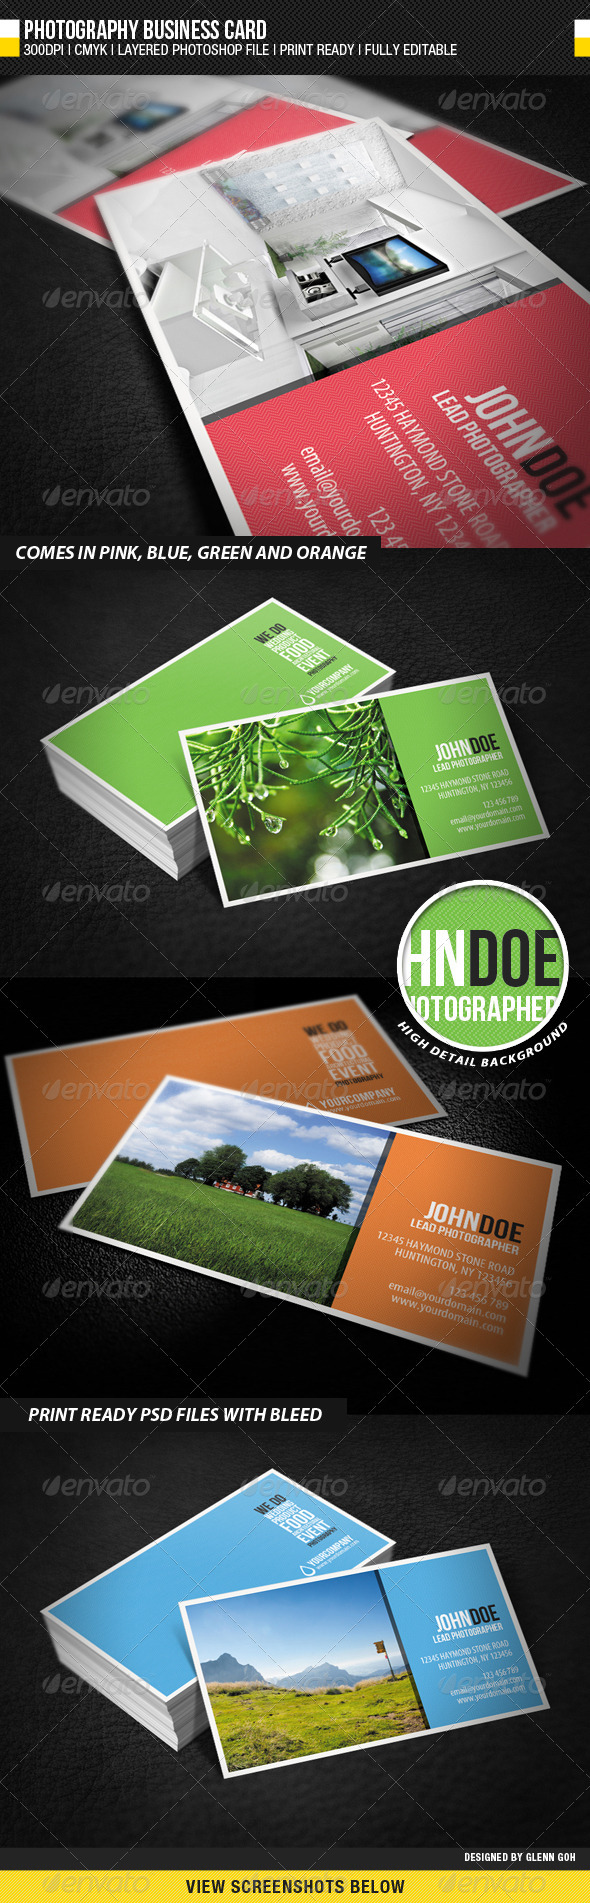 GraphicRiver Photography Business Card 1027622